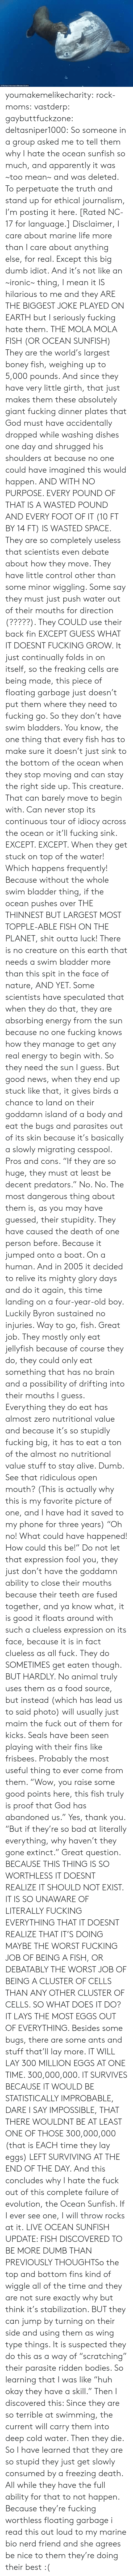 "Outta: ORihad Herrma M  S youmakemelikecharity:  rock-moms:  vastderp:  gaybuttfuckzone:  deltasniper1000:  So someone in a group asked me to tell them why I hate the ocean sunfish so much, and apparently it was ~too mean~ and was deleted. To perpetuate the truth and stand up for ethical journalism, I'm posting it here. [Rated NC-17 for language.]  Disclaimer, I care about marine life more than I care about anything else, for real. Except this big dumb idiot. And it's not like an ~ironic~ thing, I mean it IS hilarious to me and they ARE THE BIGGEST JOKE PLAYED ON EARTH but I seriously fucking hate them.  THE MOLA MOLA FISH (OR OCEAN SUNFISH)  They are the world's largest boney fish, weighing up to 5,000 pounds. And since they have very little girth, that just makes them these absolutely giant fucking dinner plates that God must have accidentally dropped while washing dishes one day and shrugged his shoulders at because no one could have imagined this would happen. AND WITH NO PURPOSE. EVERY POUND OF THAT IS A WASTED POUND AND EVERY FOOT OF IT (10 FT BY 14 FT) IS WASTED SPACE.  They are so completely useless that scientists even debate about how they move. They have little control other than some minor wiggling. Some say they must just push water out of their mouths for direction (?????). They COULD use their back fin EXCEPT GUESS WHAT IT DOESNT FUCKING GROW. It just continually folds in on itself, so the freaking cells are being made, this piece of floating garbage just doesn't put them where they need to fucking go.   So they don't have swim bladders. You know, the one thing that every fish has to make sure it doesn't just sink to the bottom of the ocean when they stop moving and can stay the right side up. This creature. That can barely move to begin with. Can never stop its continuous tour of idiocy across the ocean or it'll fucking sink. EXCEPT. EXCEPT. When they get stuck on top of the water! Which happens frequently! Because without the whole swim bladder thing, if the ocean pushes over THE THINNEST BUT LARGEST MOST TOPPLE-ABLE FISH ON THE PLANET, shit outta luck! There is no creature on this earth that needs a swim bladder more than this spit in the face of nature, AND YET. Some scientists have speculated that when they do that, they are absorbing energy from the sun because no one fucking knows how they manage to get any real energy to begin with. So they need the sun I guess. But good news, when they end up stuck like that, it gives birds a chance to land on their goddamn island of a body and eat the bugs and parasites out of its skin because it's basically a slowly migrating cesspool. Pros and cons.   ""If they are so huge, they must at least be decent predators."" No. No. The most dangerous thing about them is, as you may have guessed, their stupidity. They have caused the death of one person before. Because it jumped onto a boat. On a human. And in 2005 it decided to relive its mighty glory days and do it again, this time landing on a four-year-old boy. Luckily Byron sustained no injuries. Way to go, fish. Great job.  They mostly only eat jellyfish because of course they do, they could only eat something that has no brain and a possibility of drifting into their mouths I guess. Everything they do eat has almost zero nutritional value and because it's so stupidly fucking big, it has to eat a ton of the almost no nutritional value stuff to stay alive. Dumb. See that ridiculous open mouth? (This is actually why this is my favorite picture of one, and I have had it saved to my phone for three years) ""Oh no! What could have happened! How could this be!"" Do not let that expression fool you, they just don't have the goddamn ability to close their mouths because their teeth are fused together, and ya know what, it is good it floats around with such a clueless expression on its face, because it is in fact clueless as all fuck.  They do SOMETIMES get eaten though. BUT HARDLY. No animal truly uses them as a food source, but instead (which has lead us to said photo) will usually just maim the fuck out of them for kicks. Seals have been seen playing with their fins like frisbees. Probably the most useful thing to ever come from them.   ""Wow, you raise some good points here, this fish truly is proof that God has abandoned us."" Yes, thank you. ""But if they're so bad at literally everything, why haven't they gone extinct."" Great question.   BECAUSE THIS THING IS SO WORTHLESS IT DOESNT REALIZE IT SHOULD NOT EXIST. IT IS SO UNAWARE OF LITERALLY FUCKING EVERYTHING THAT IT DOESNT REALIZE THAT IT'S DOING MAYBE THE WORST FUCKING JOB OF BEING A FISH, OR DEBATABLY THE WORST JOB OF BEING A CLUSTER OF CELLS THAN ANY OTHER CLUSTER OF CELLS. SO WHAT DOES IT DO? IT LAYS THE MOST EGGS OUT OF EVERYTHING. Besides some bugs, there are some ants and stuff that'll lay more. IT WILL LAY 300 MILLION EGGS AT ONE TIME. 300,000,000. IT SURVIVES BECAUSE IT WOULD BE STATISTICALLY IMPROBABLE, DARE I SAY IMPOSSIBLE, THAT THERE WOULDNT BE AT LEAST ONE OF THOSE 300,000,000 (that is EACH time they lay eggs) LEFT SURVIVING AT THE END OF THE DAY.   And this concludes why I hate the fuck out of this complete failure of evolution, the Ocean Sunfish. If I ever see one, I will throw rocks at it.   LIVE OCEAN SUNFISH UPDATE: FISH DISCOVERED TO BE MORE DUMB THAN PREVIOUSLY THOUGHTSo  the top and bottom fins kind of wiggle all of the time and they are not  sure exactly why but think it's stabilization. BUT they can jump by  turning on their side and using them as  wing type things. It is suspected they do this as a way of ""scratching""  their parasite ridden bodies. So learning that I was like ""huh okay they  have a skill."" Then I discovered this: Since they  are so terrible at swimming, the current will carry them into deep cold  water. Then they die. So I have learned that they are so stupid they  just get slowly consumed by a freezing death. All while they have the  full ability for that to not happen. Because they're fucking worthless  floating garbage    i read this out loud to my marine bio nerd friend and she agrees   be nice to them they're doing their best :("